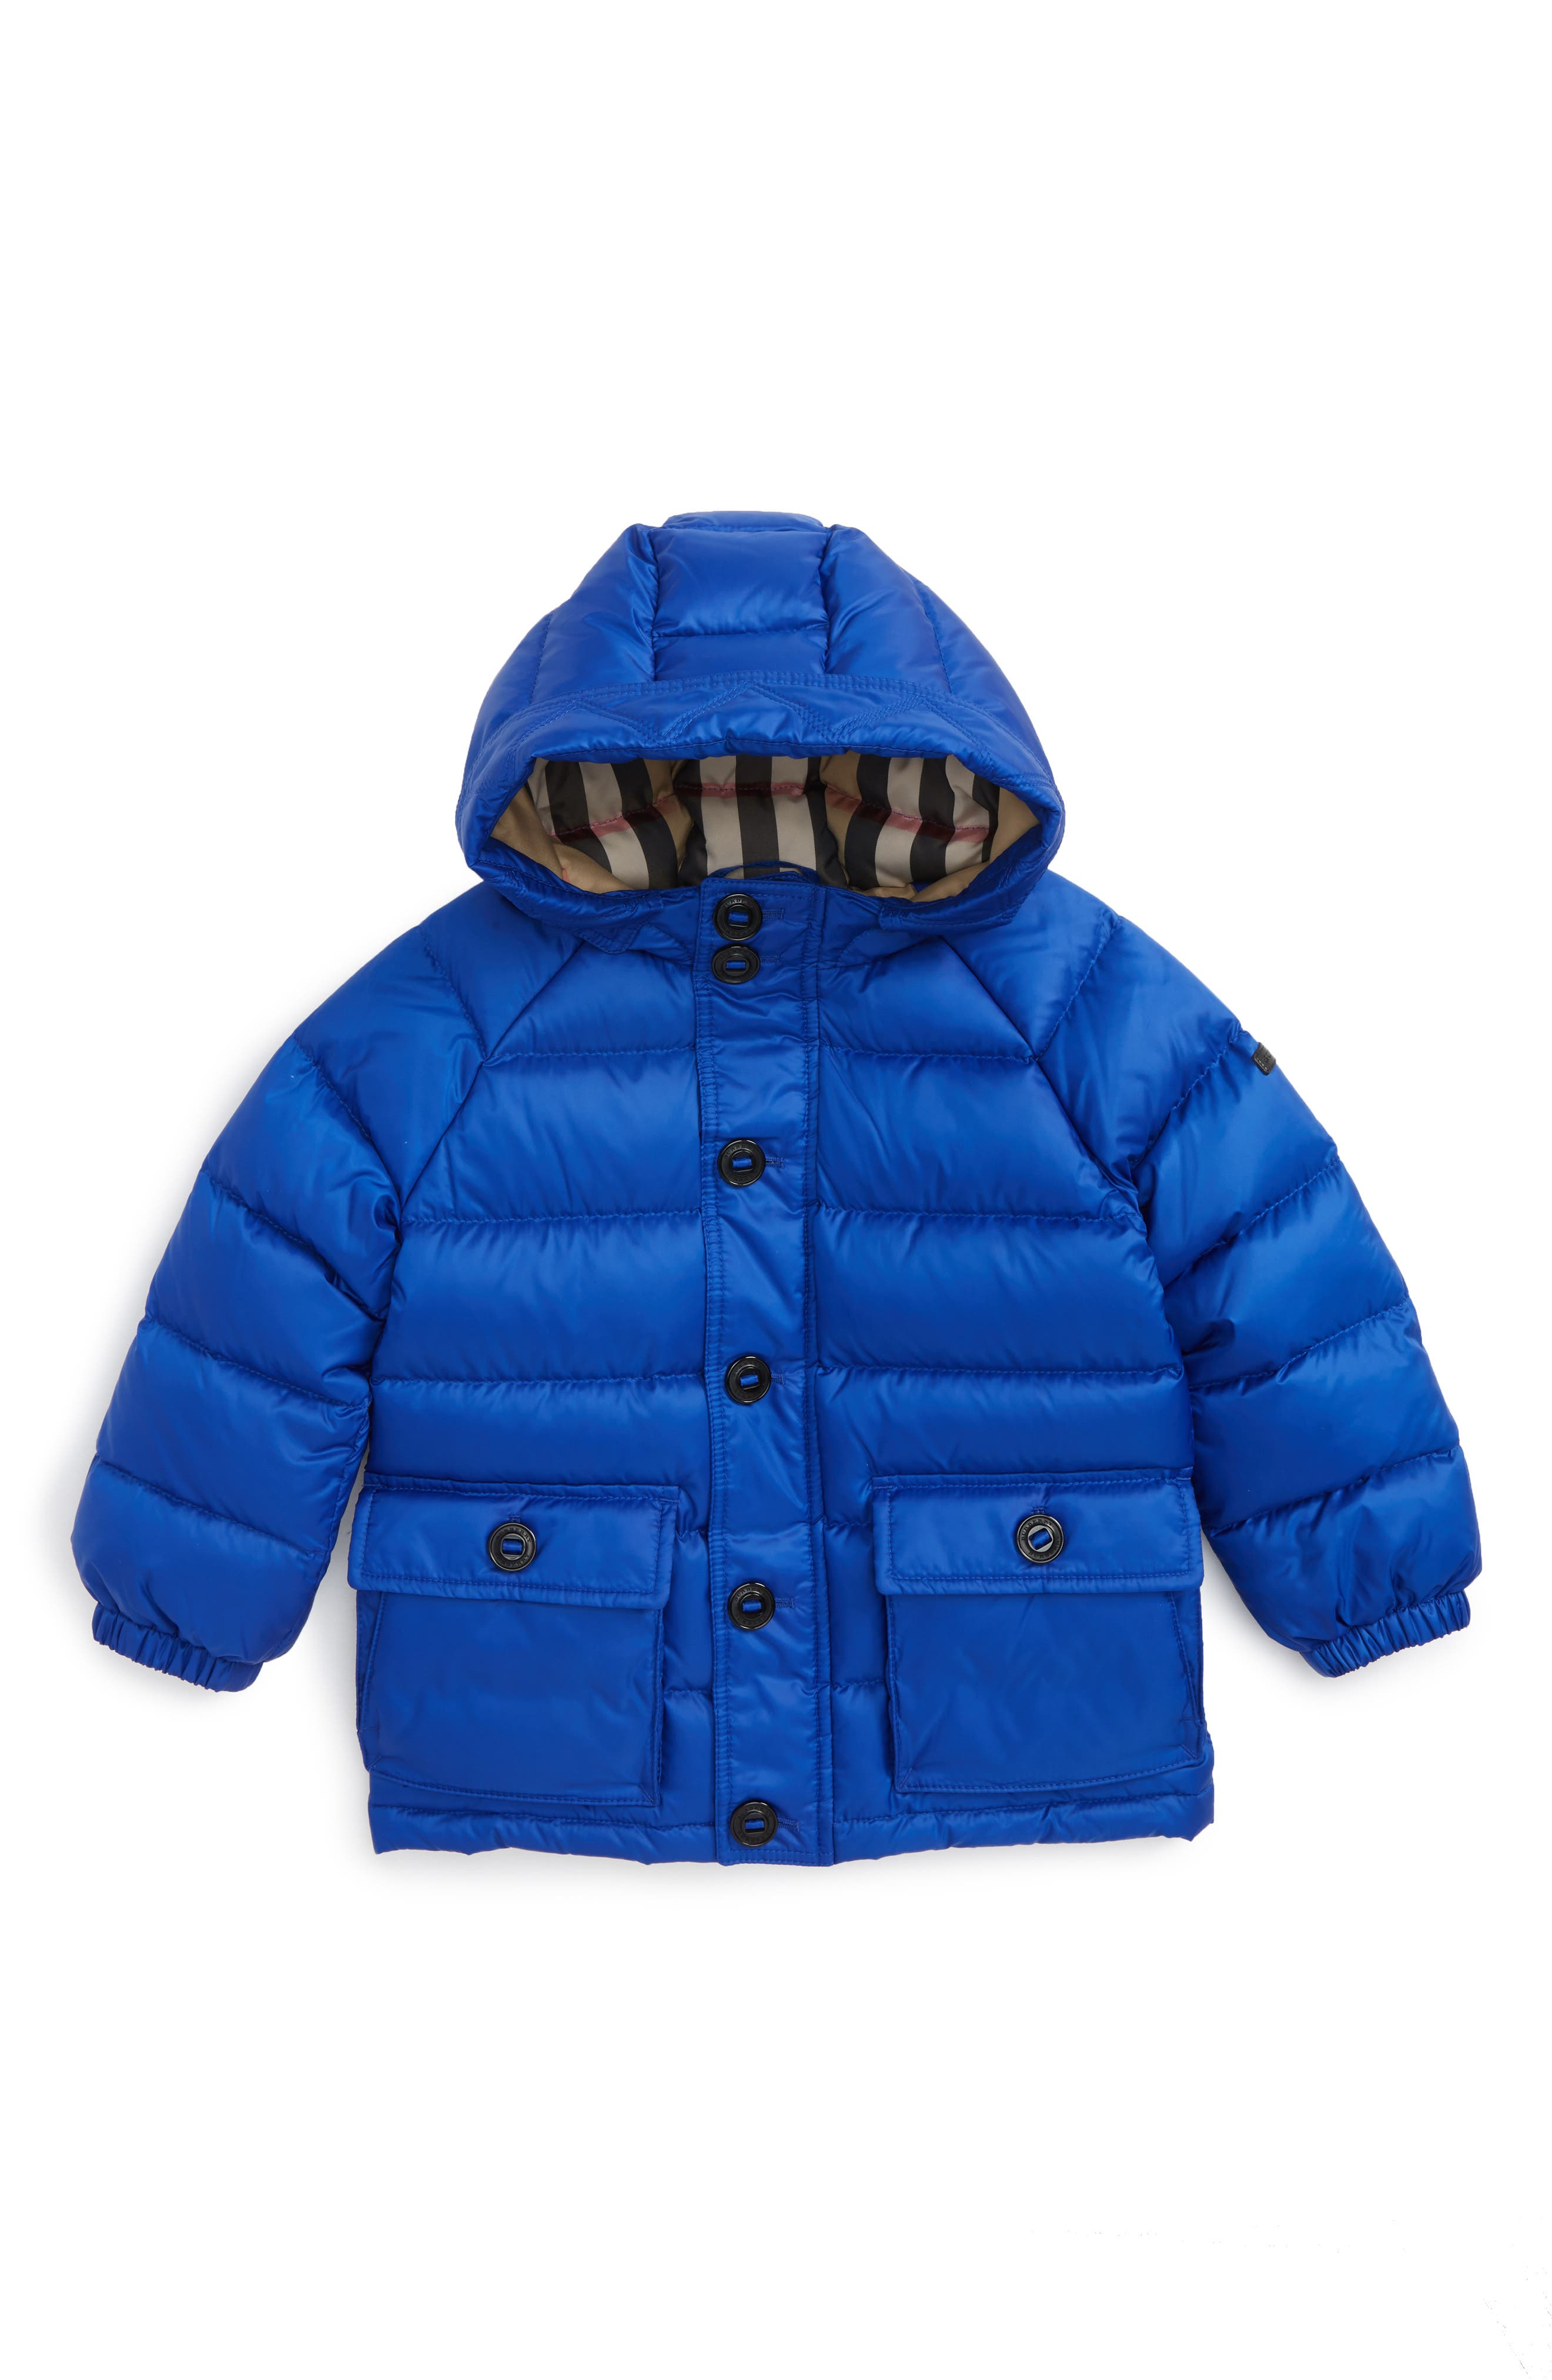 Main Image - Burberry Mini Lachlan Hooded Down Jacket (Toddler Boys)